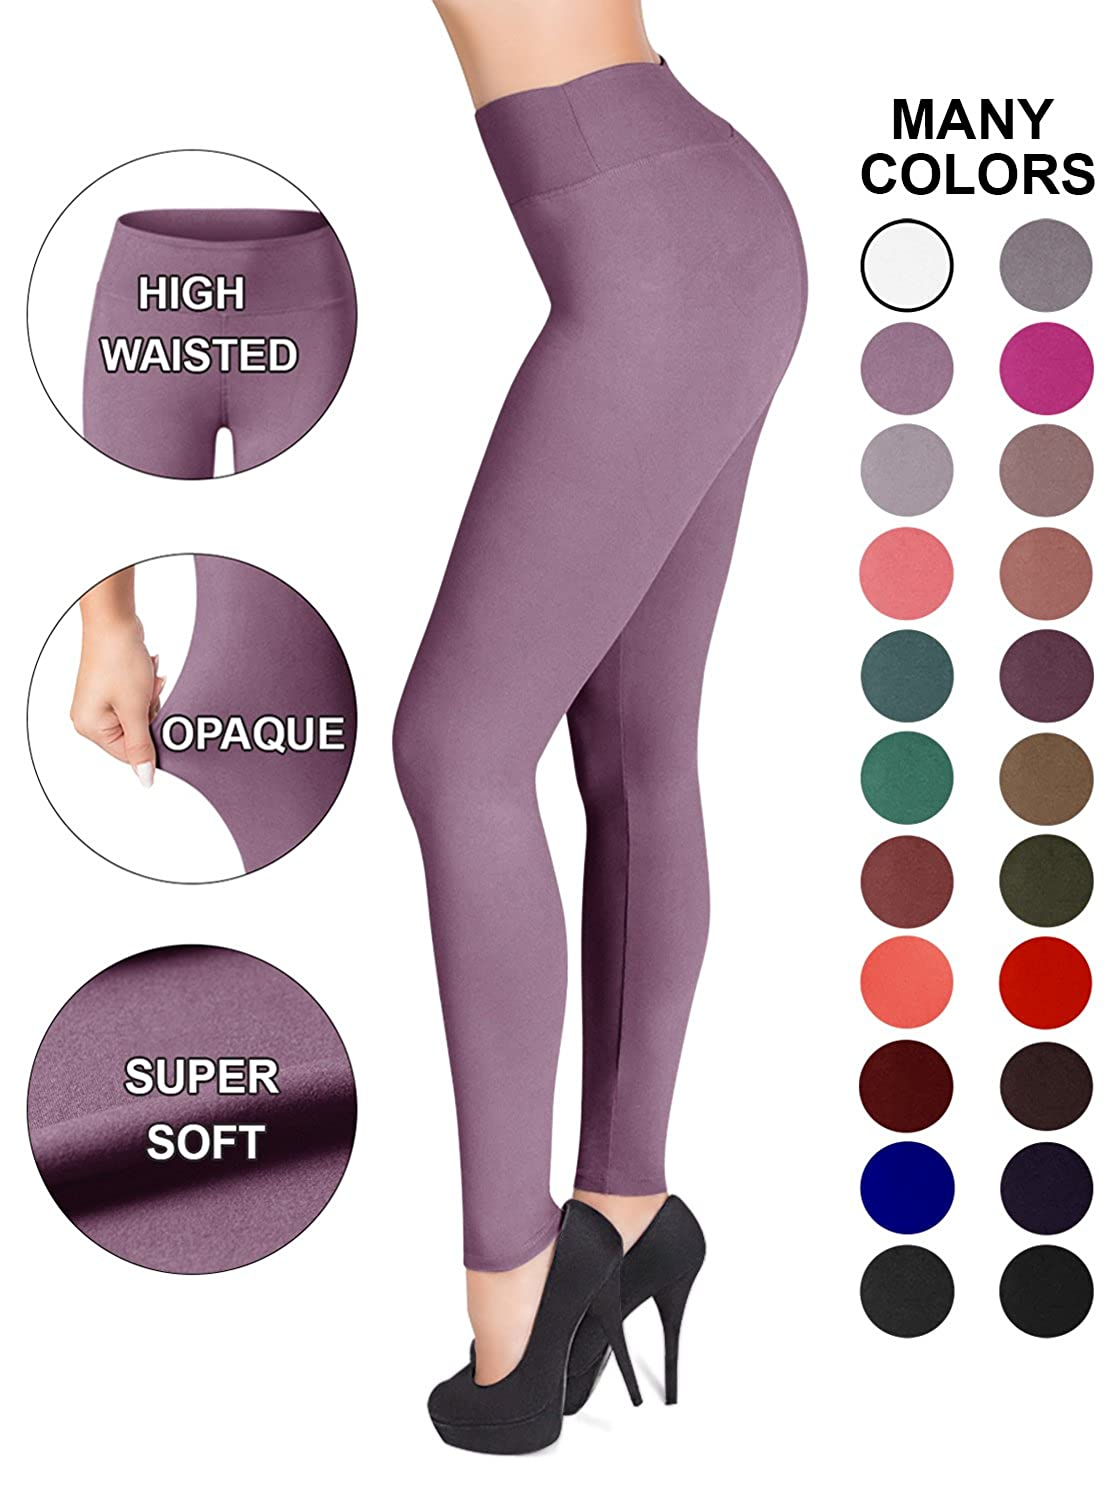 621636c23b117 ... Waistband Leggings are a must have. The high waisted waistband  comfortably hugs everything in for that sexy hourglass shape. You can also move  freely ...